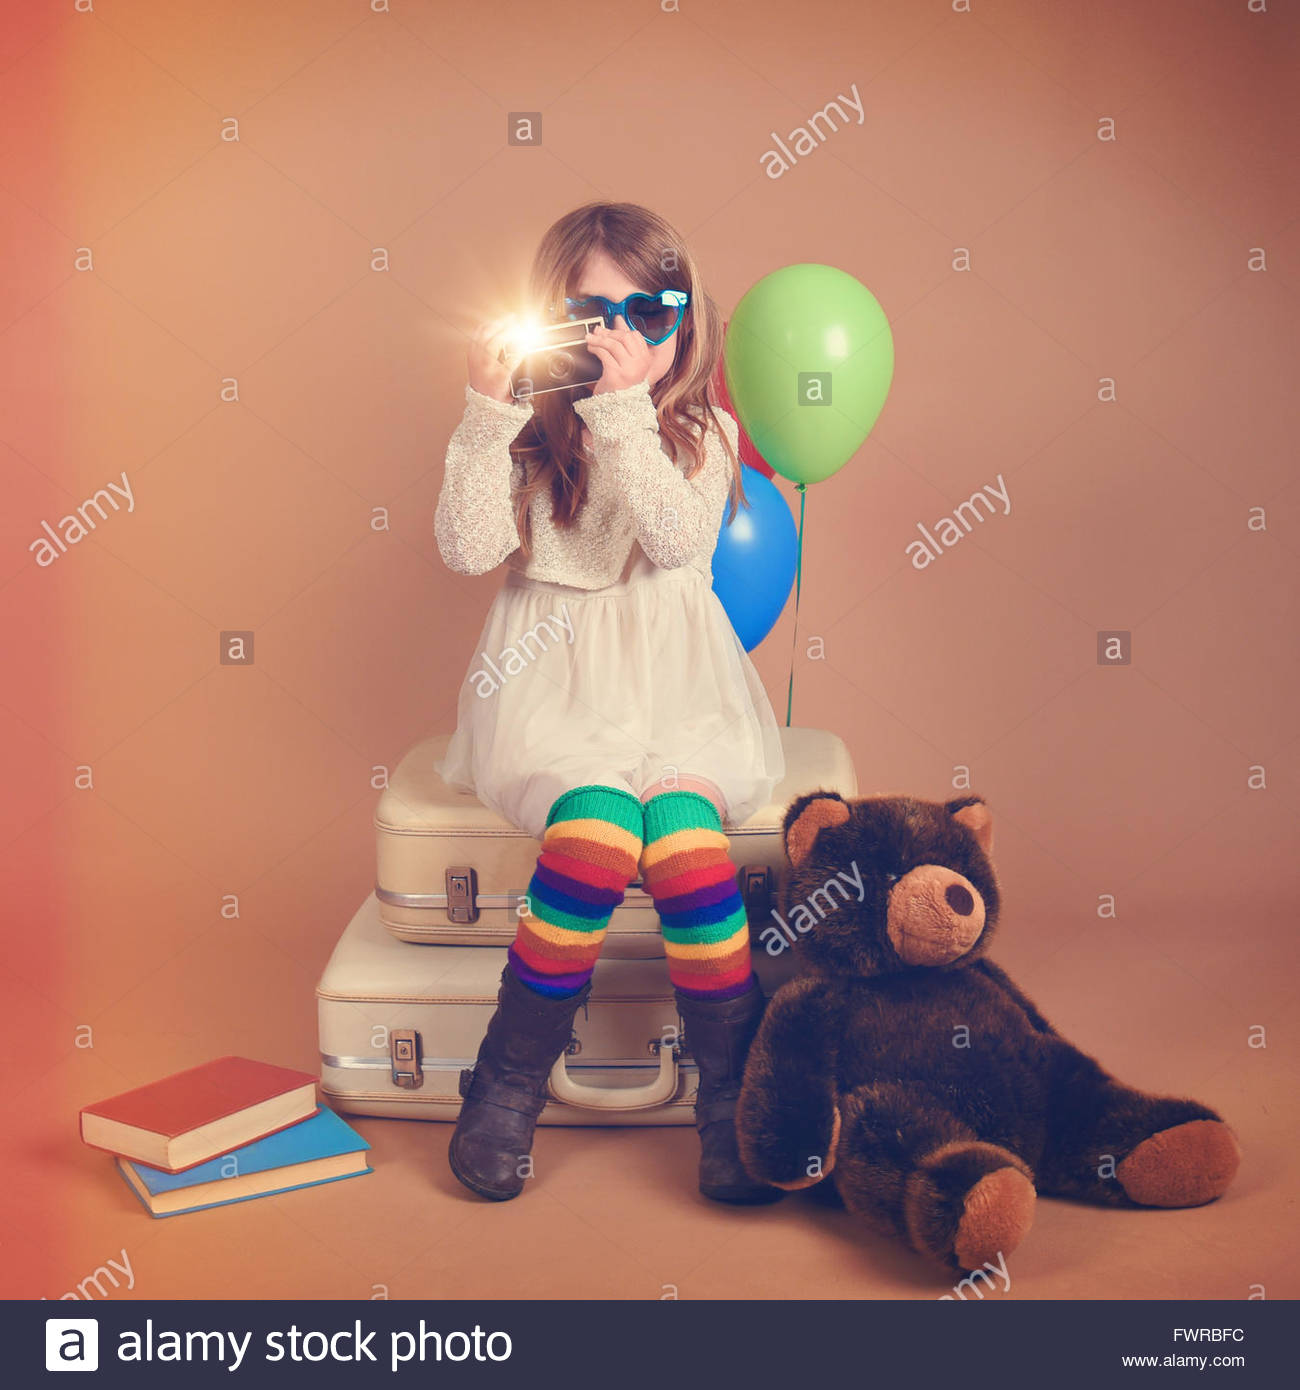 A photo of a vintage child taking a picture with an old camera against with rainbow balloons and a teddy bear for - Stock Image